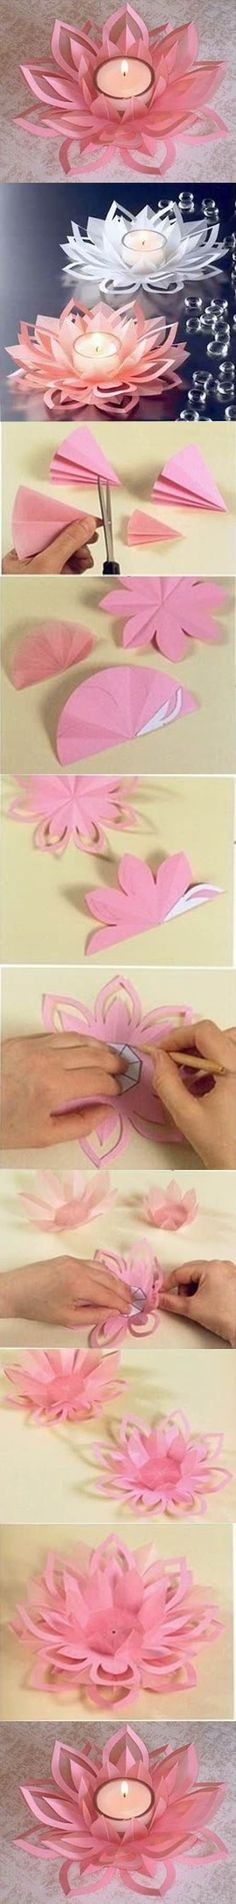 DIY Paper Lotus Candlestick Looks quick and easy for a wedding decor.